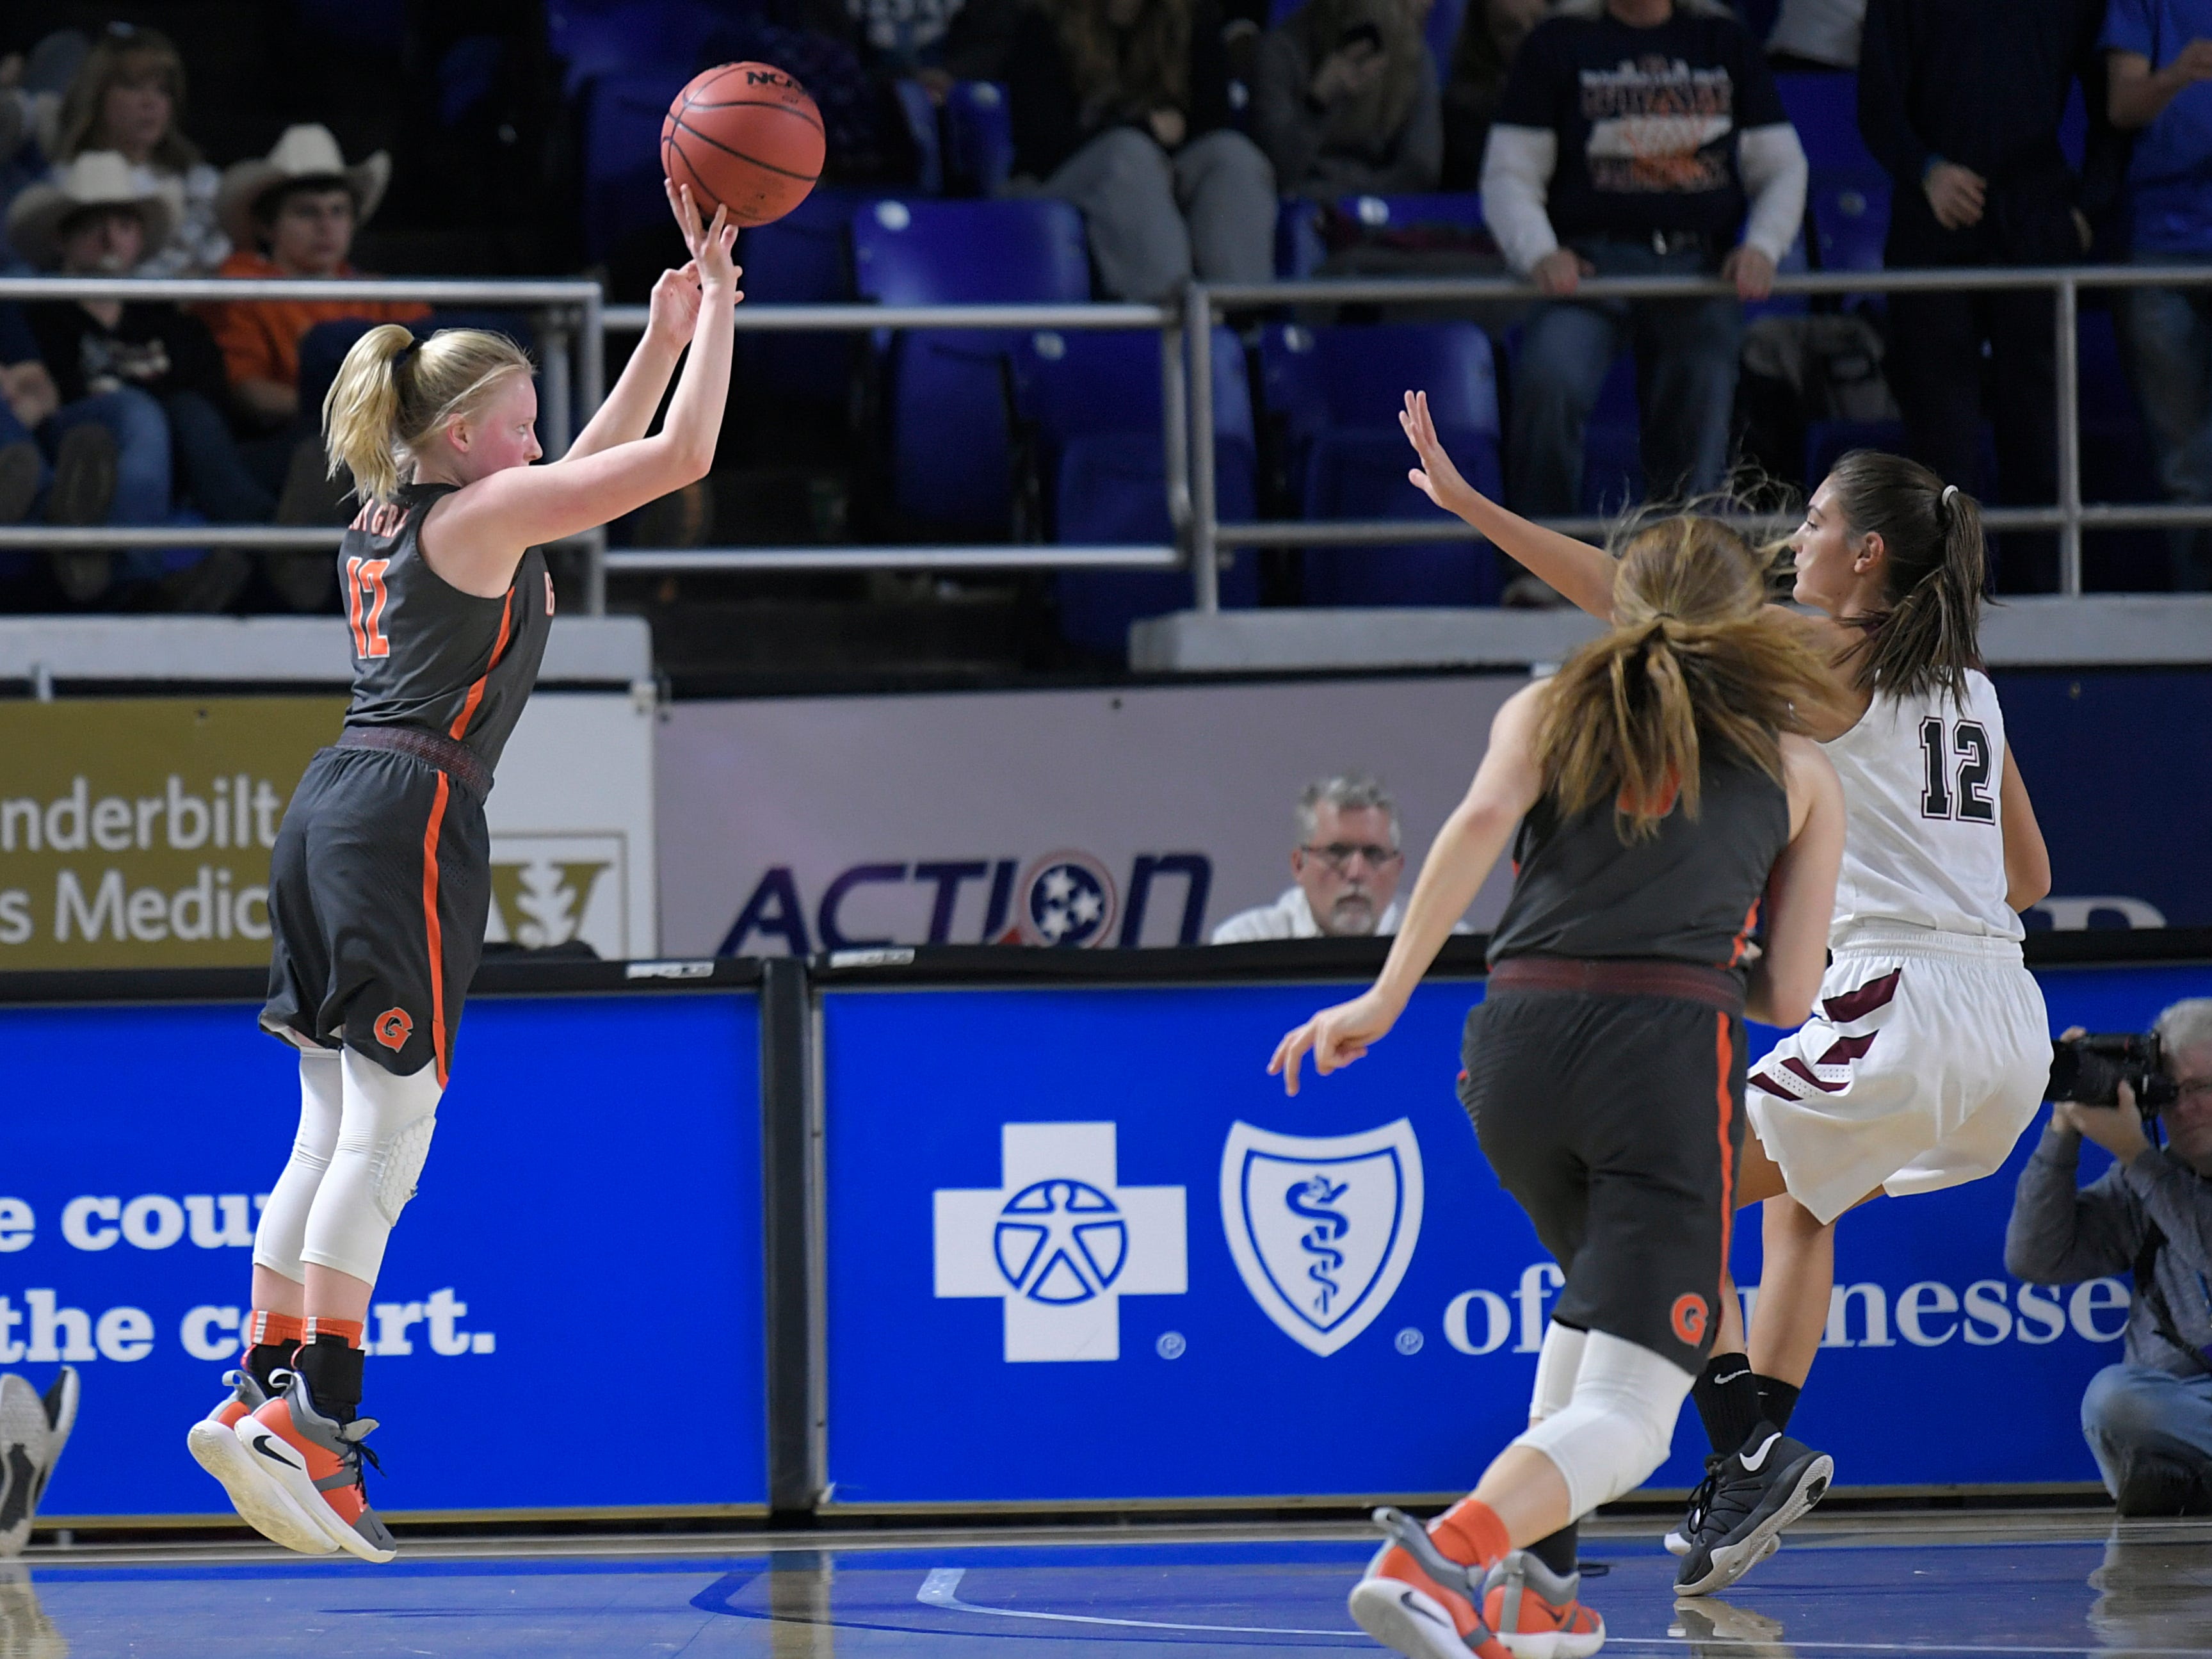 Grainger's Isabelle Stratton hits a three-pointer against Cheatham County during the quarterfinals of TSSAA BlueCross Class AA girls basketball championship at MTSU's Murphy Center in Murfreesboro on Wednesday, March 6, 2019.